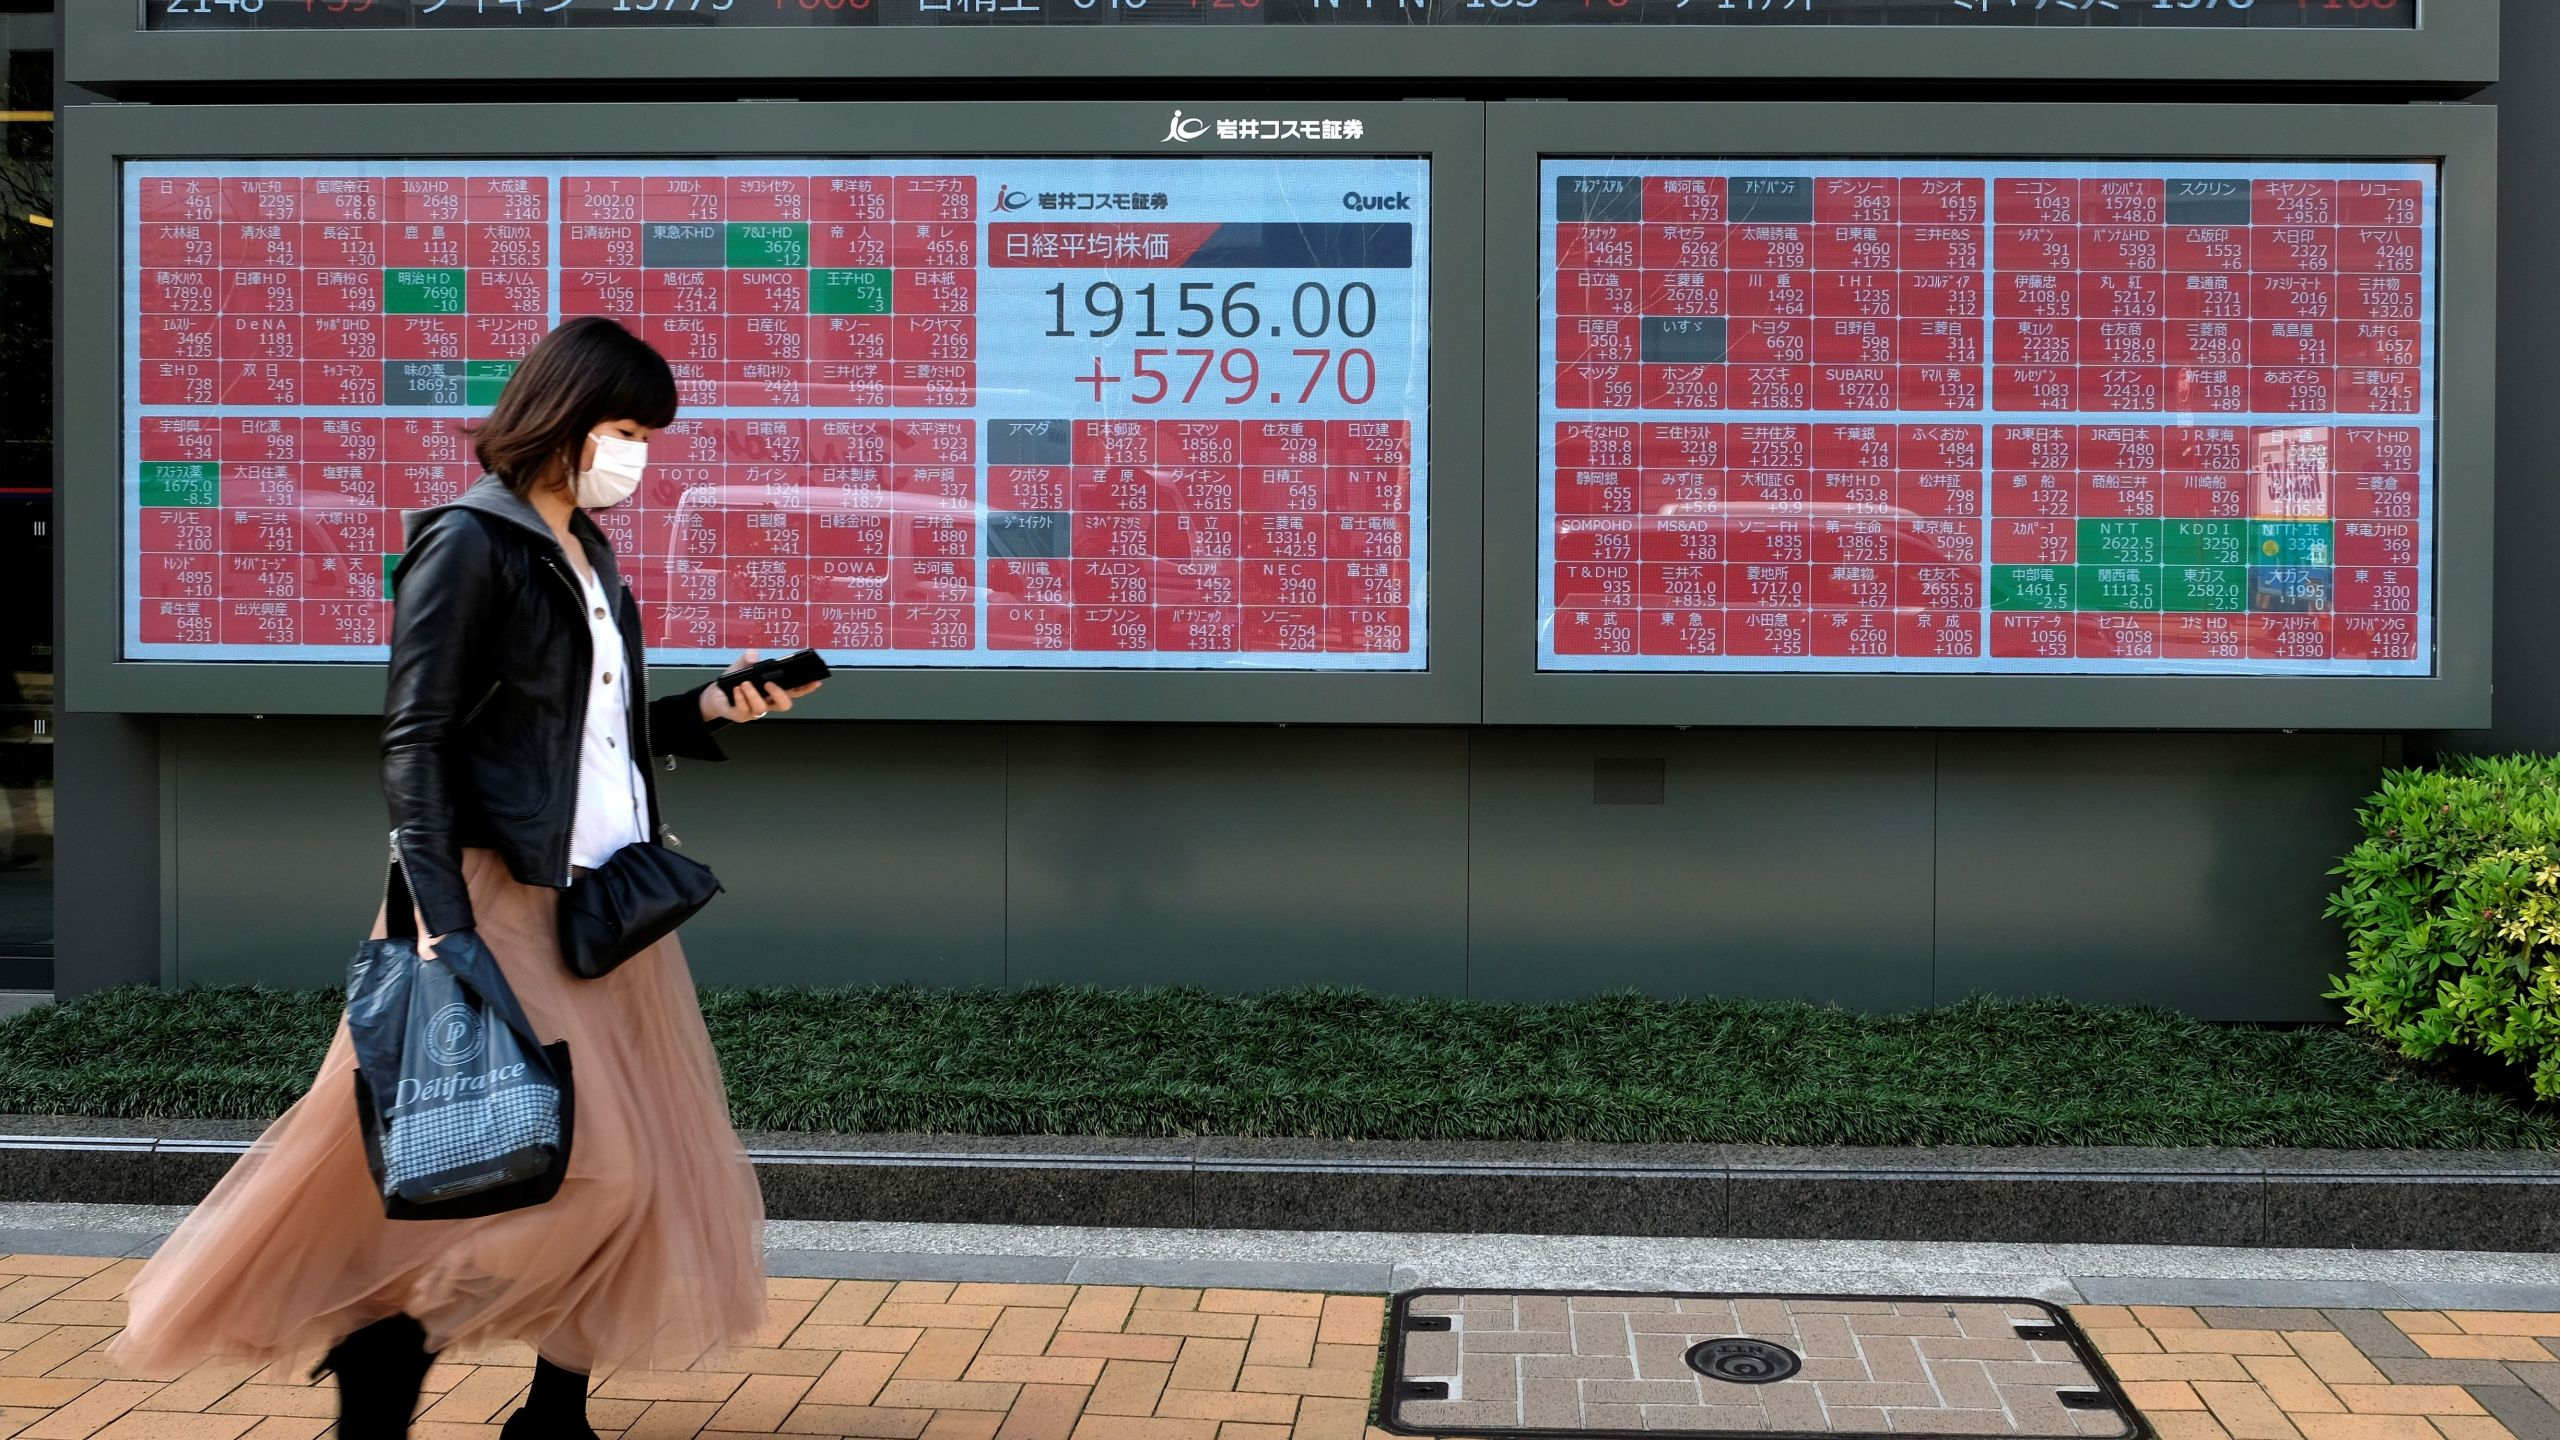 A pedestrian walks past a quotation board displaying share prices of the Tokyo Stock Exchange in Tokyo on April 7, 2020. (KAZUHIRO NOGI/AFP via Getty Images)